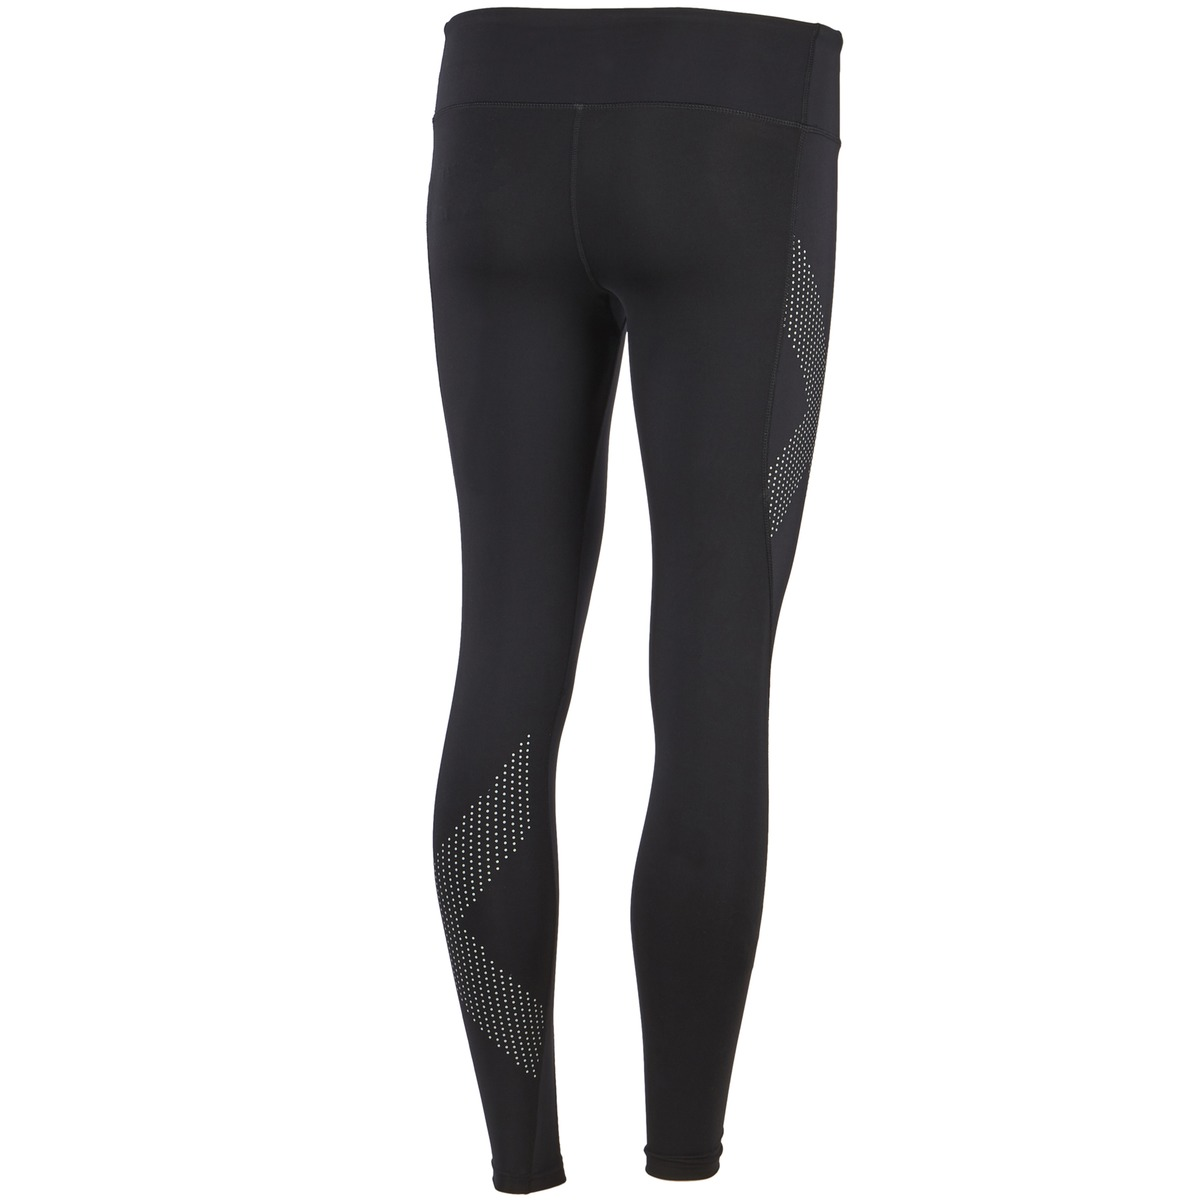 Mid Rise Compression Tight, kompresjonstights dame